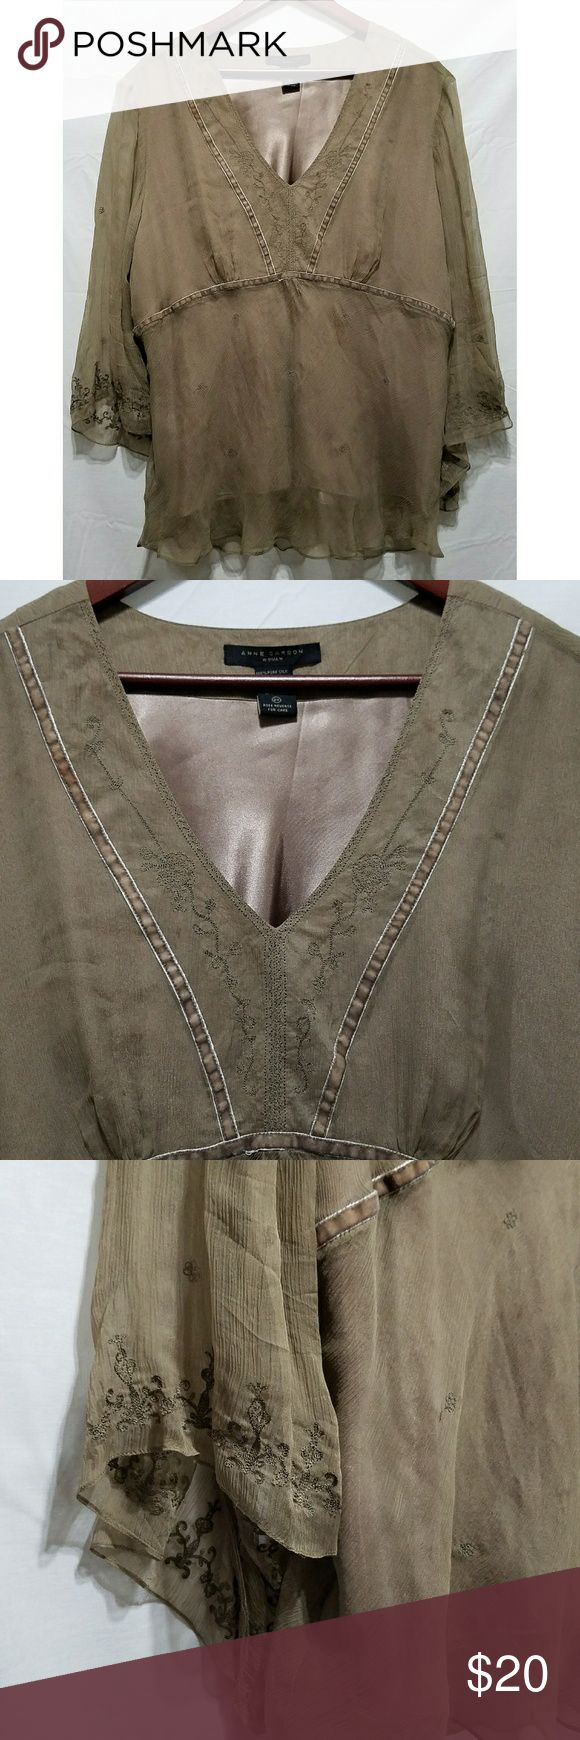 """Anne Carson Woman Brown Silk Embroidered Blouse Women's Anne Carson brown blouse, size 2X. It is embroidered silk with a polyester lining. The sleeves are sheer. It is in excellent used condition with no stains, tears, rips or holes that I can see.  Shell: 100% silk  Lining: 100% polyester   Chest: 54"""" Armpit to armpit: 27"""" Shoulder to hem: 27"""" Armpit to hem: 18"""" Sleeve: 17.5""""  All items come from a smoke and pet free home. Anne Carson Tops Blouses"""